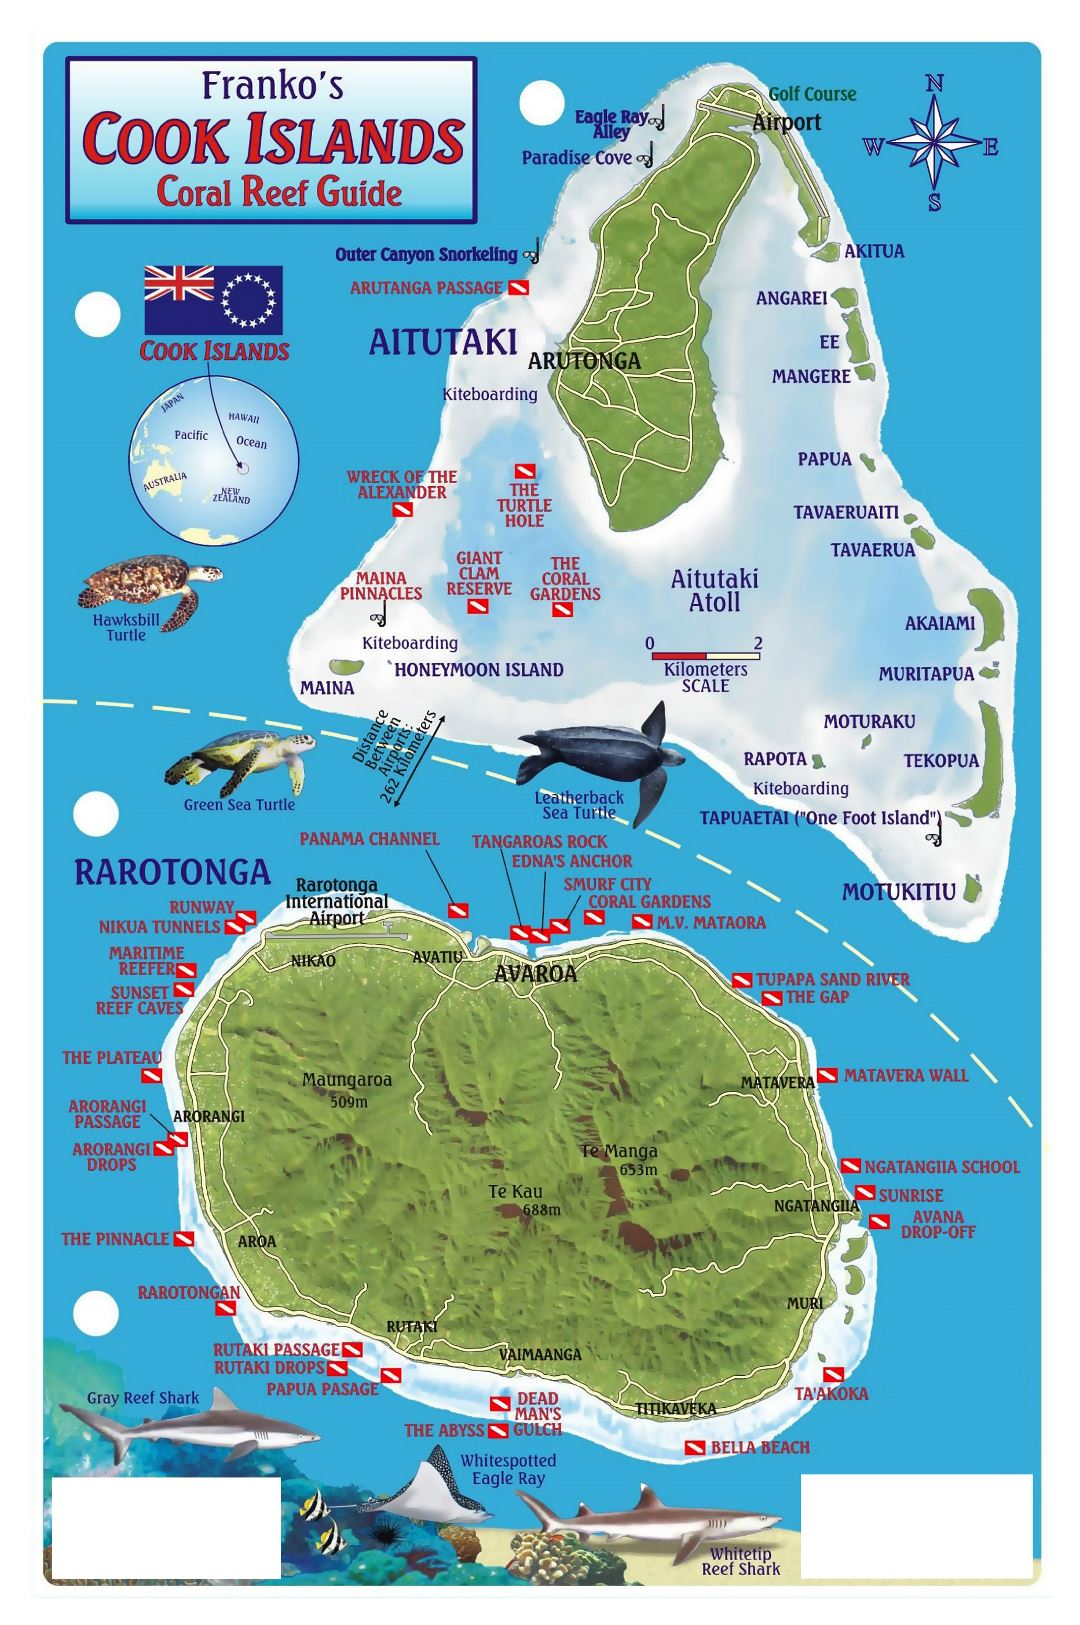 Large tourist map of Cook Islands